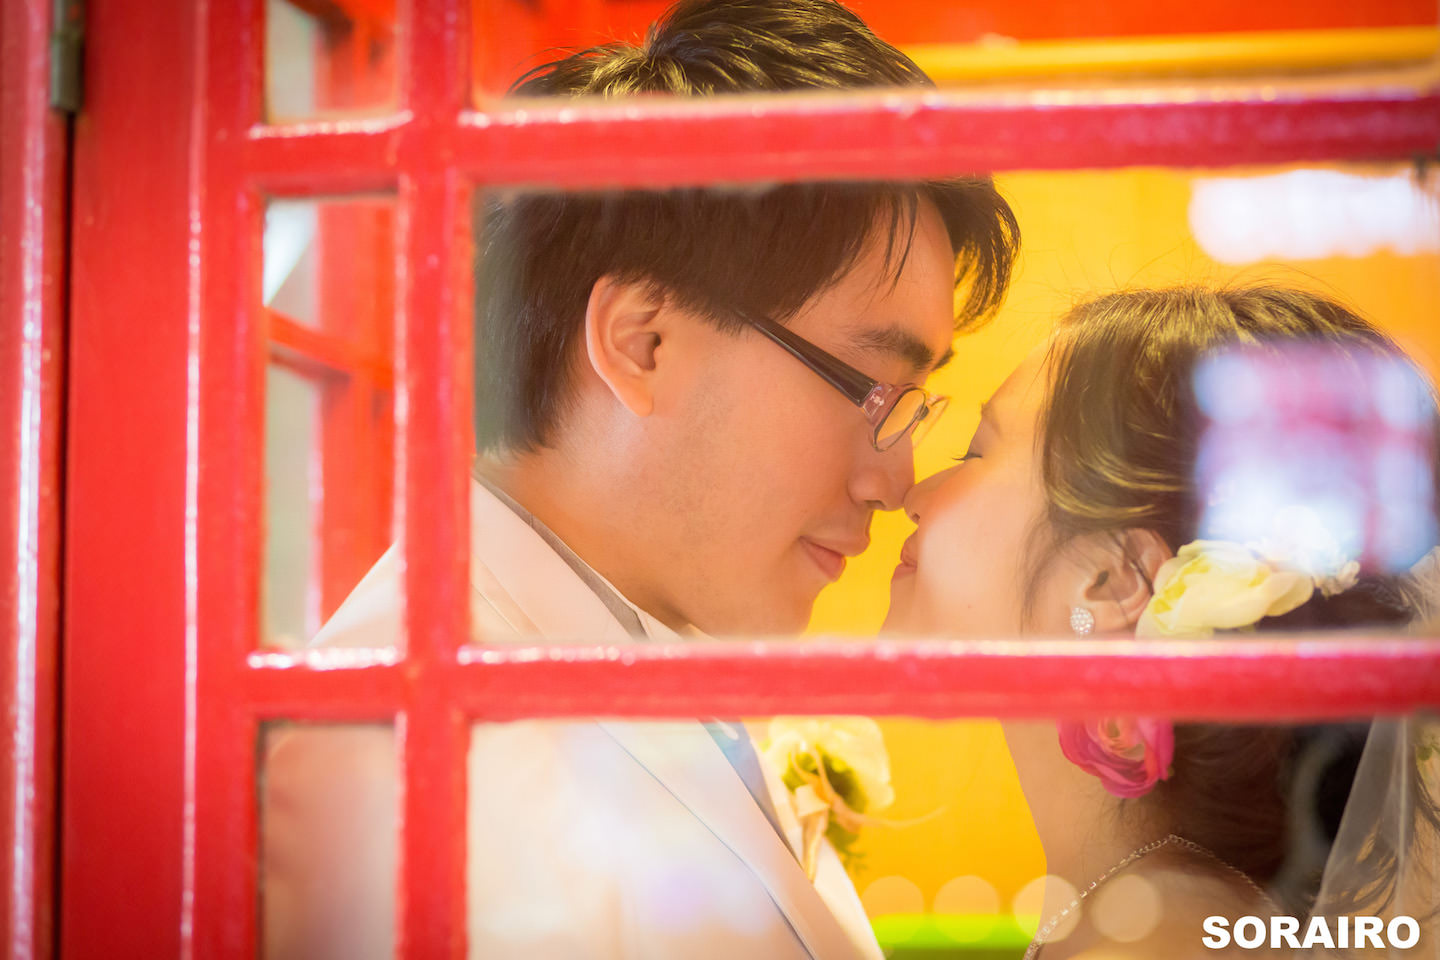 cA couple looking at each other romantically inside the telephone box with woman wearing wedding dress for pre-wedding photo